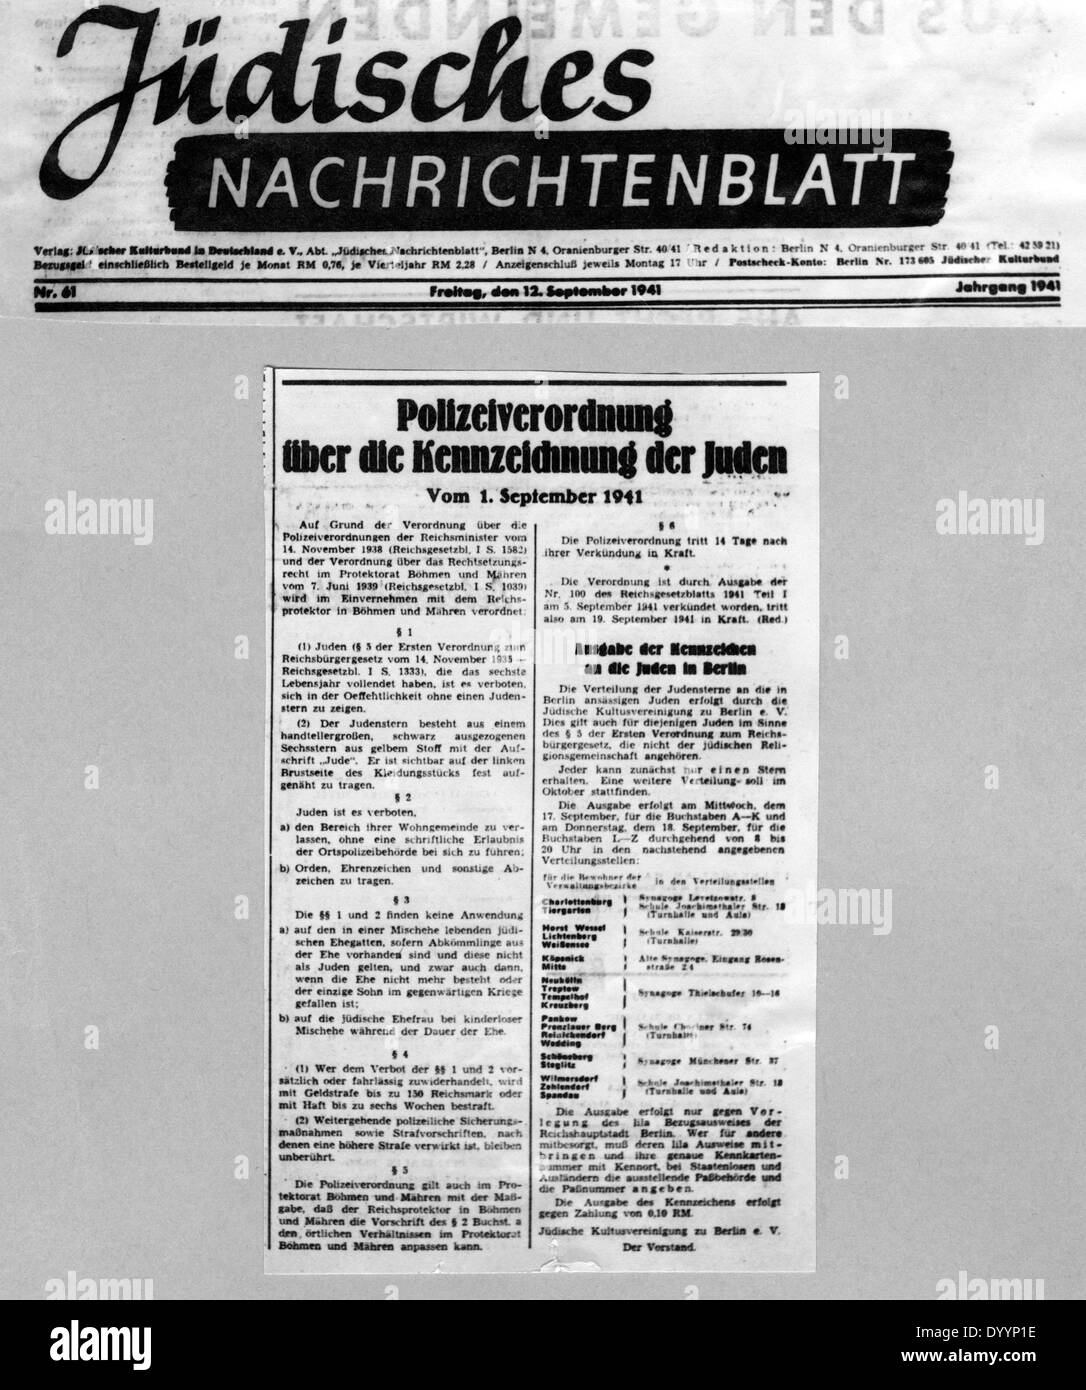 Police regulations about the identification of Jews, 1941 - Stock Image